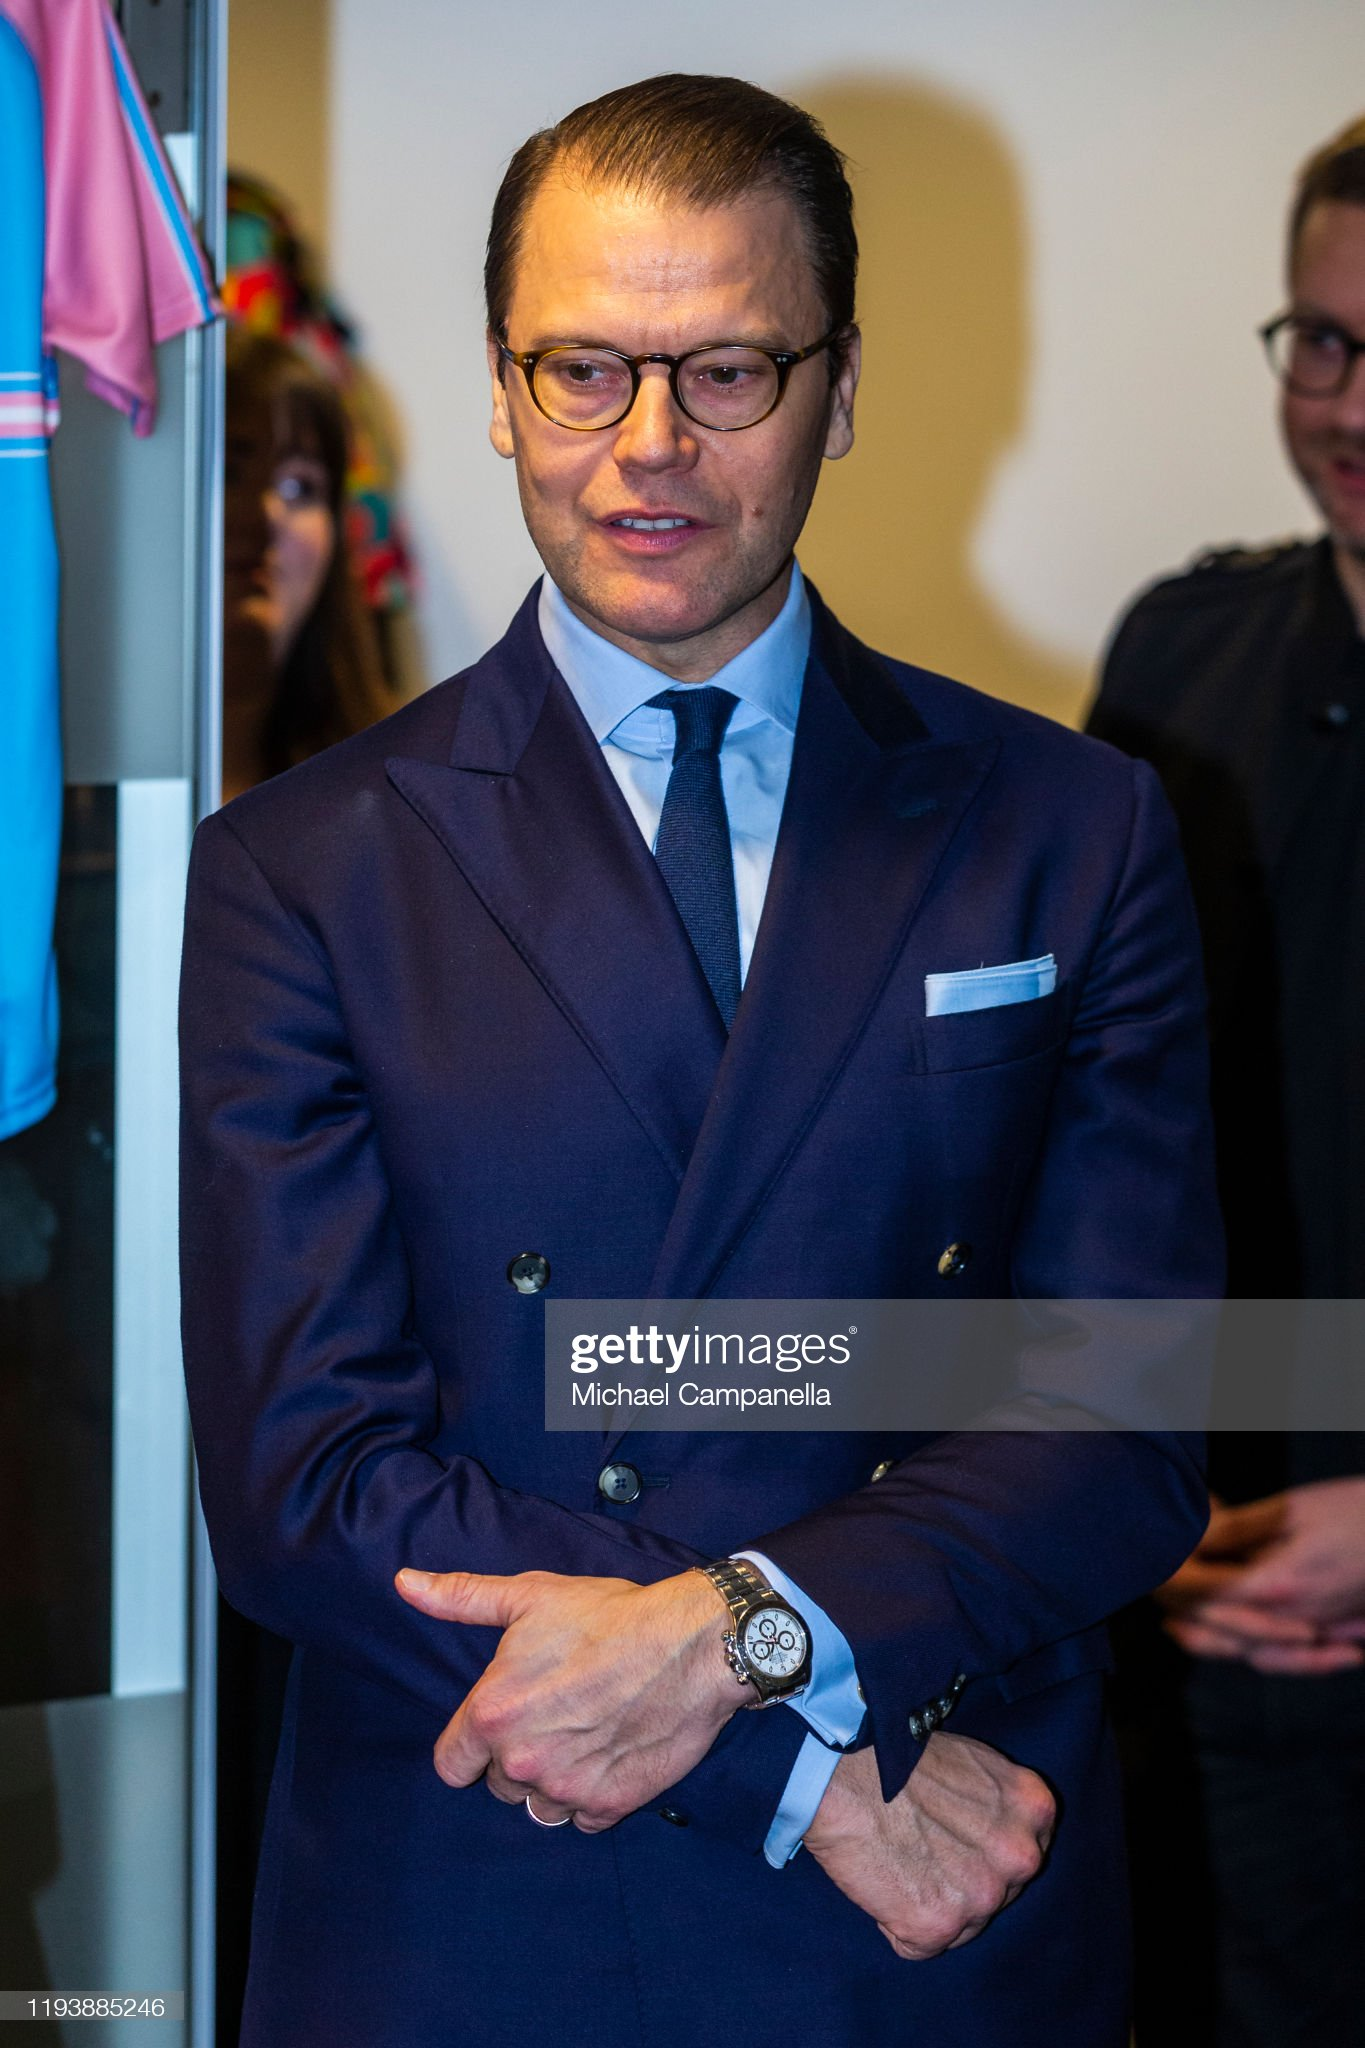 prince-daniel-of-sweden-visits-the-swedish-federation-for-lesbian-gay-picture-id1193885246